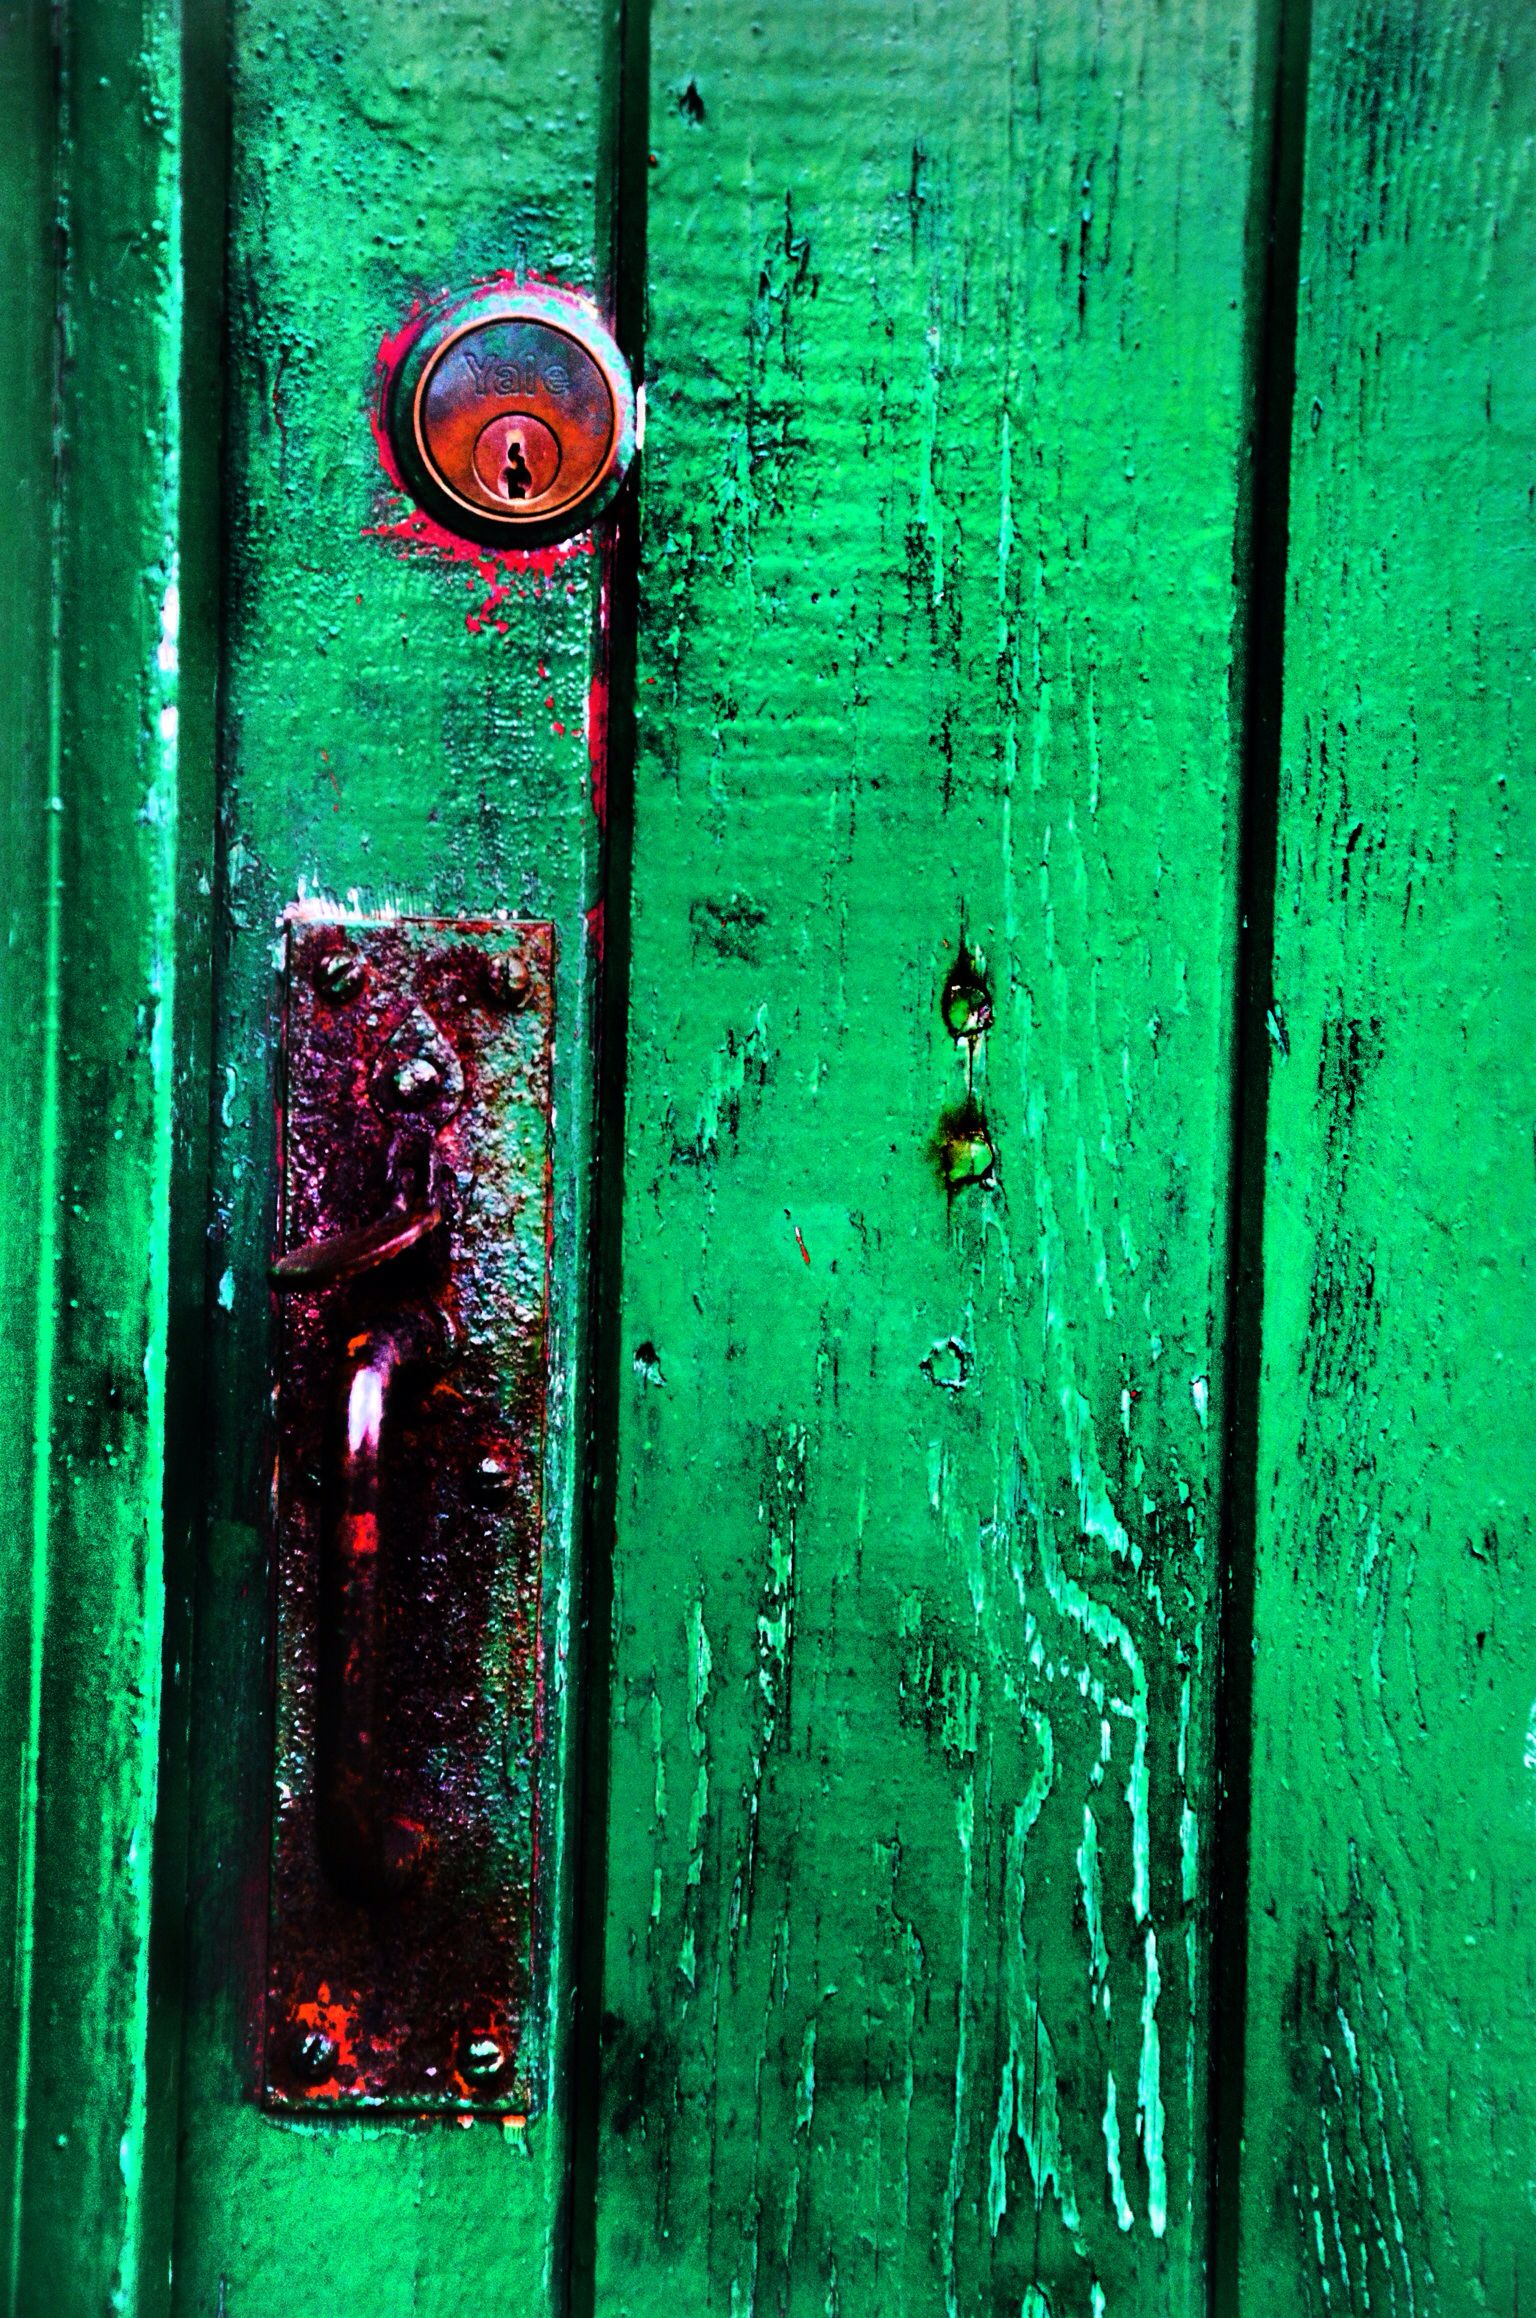 My own photography decaying industrial door loved the colour and